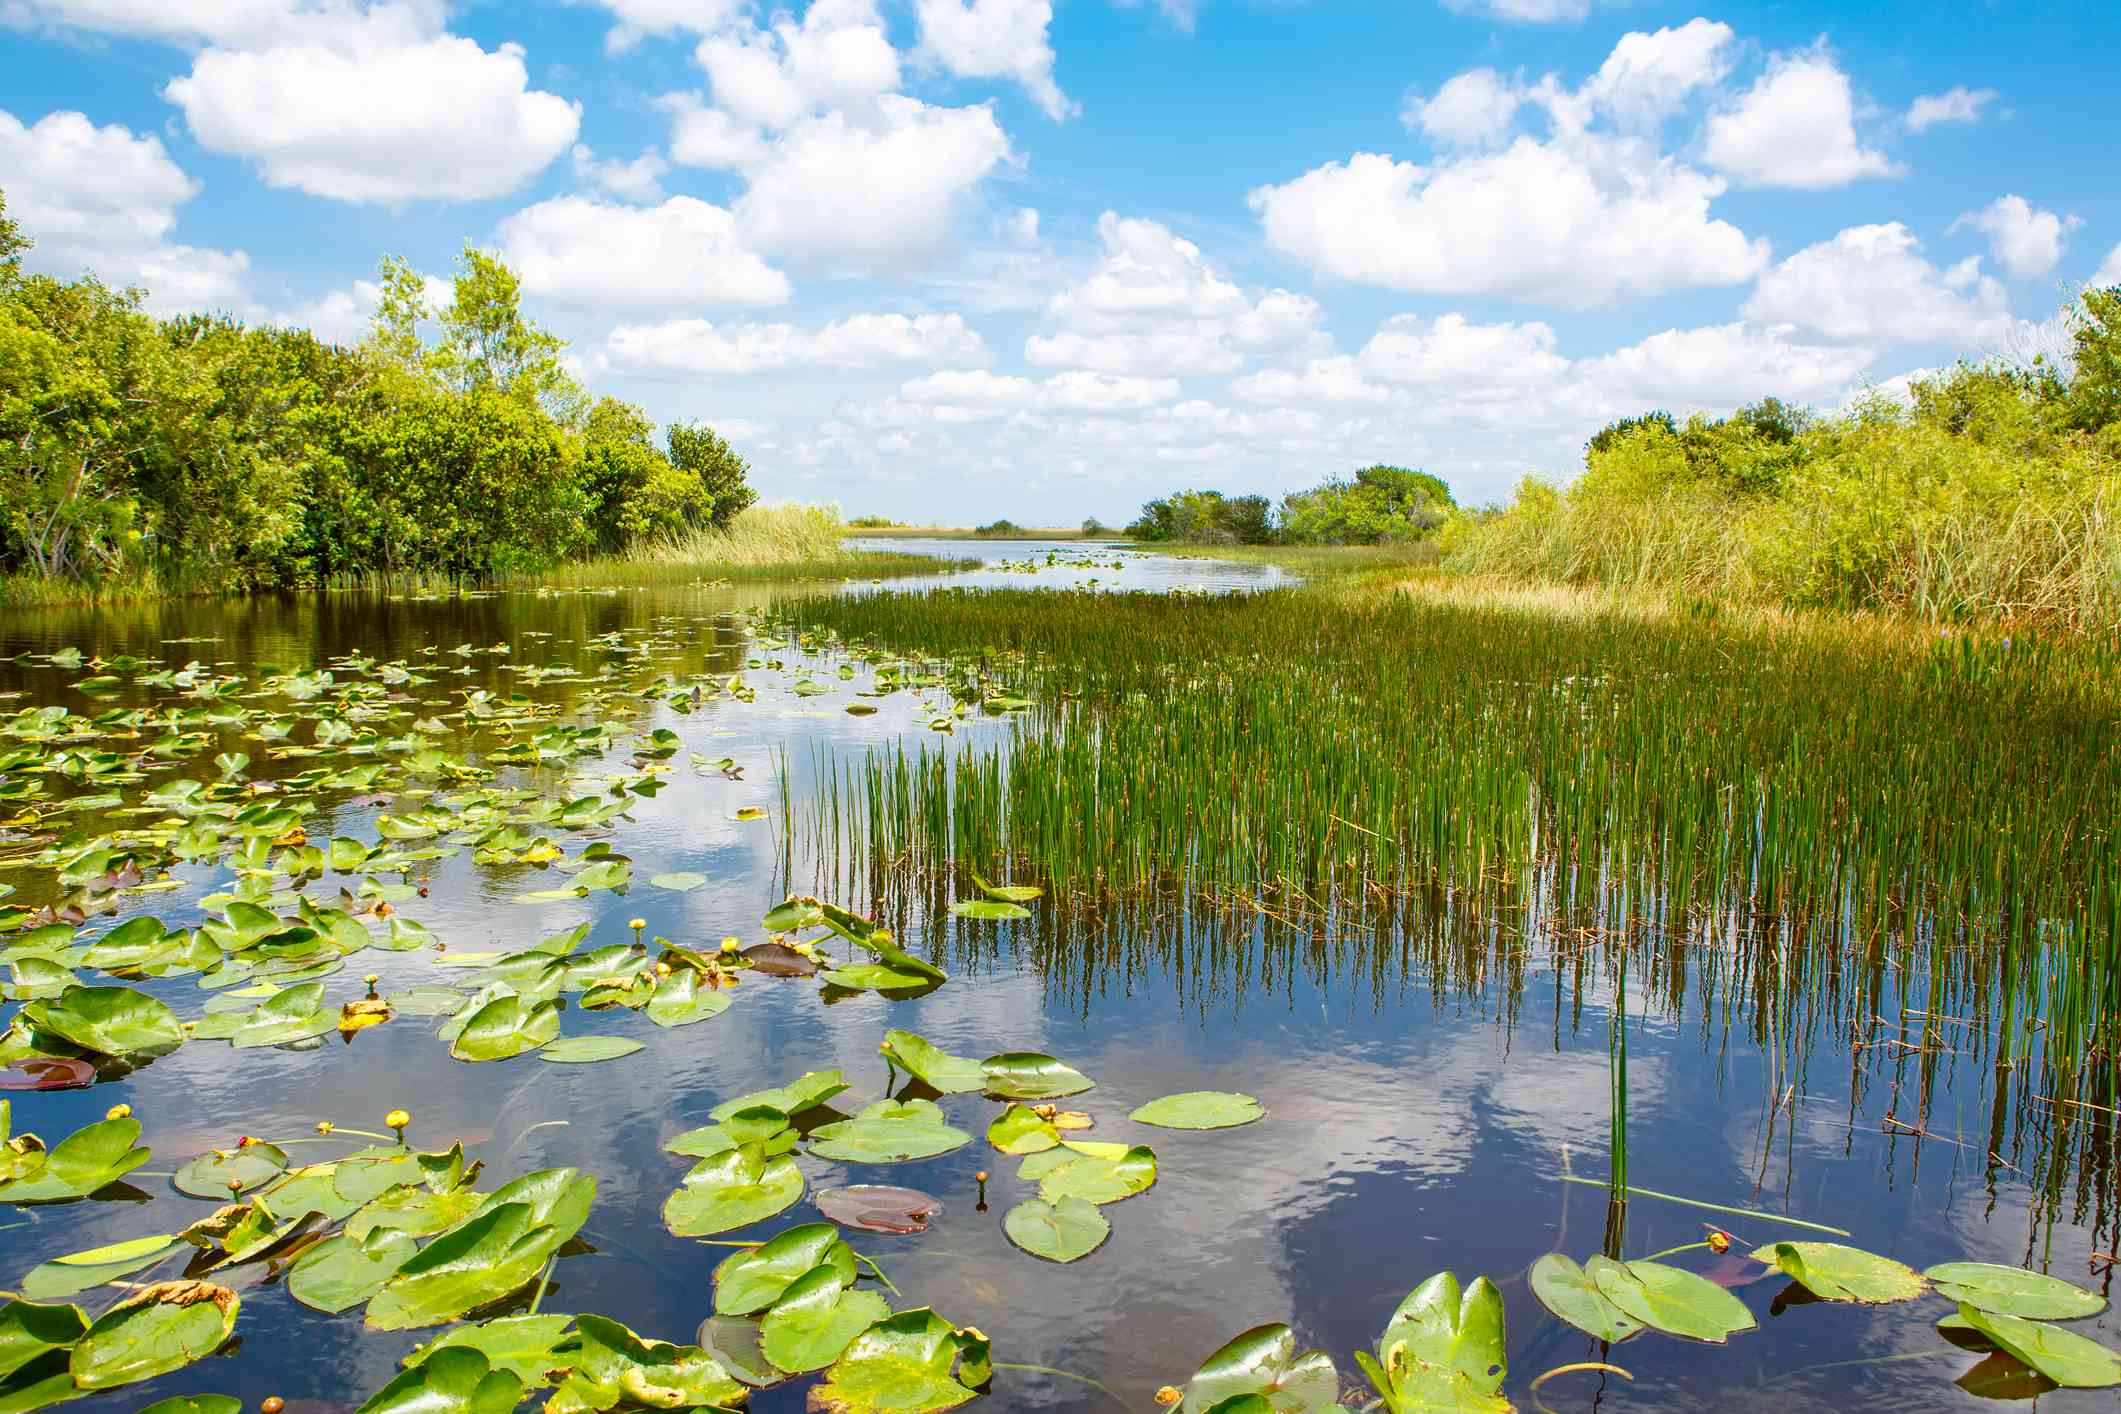 Wetland habitat in Everglades National Park with smooth water under blue sky and white clouds